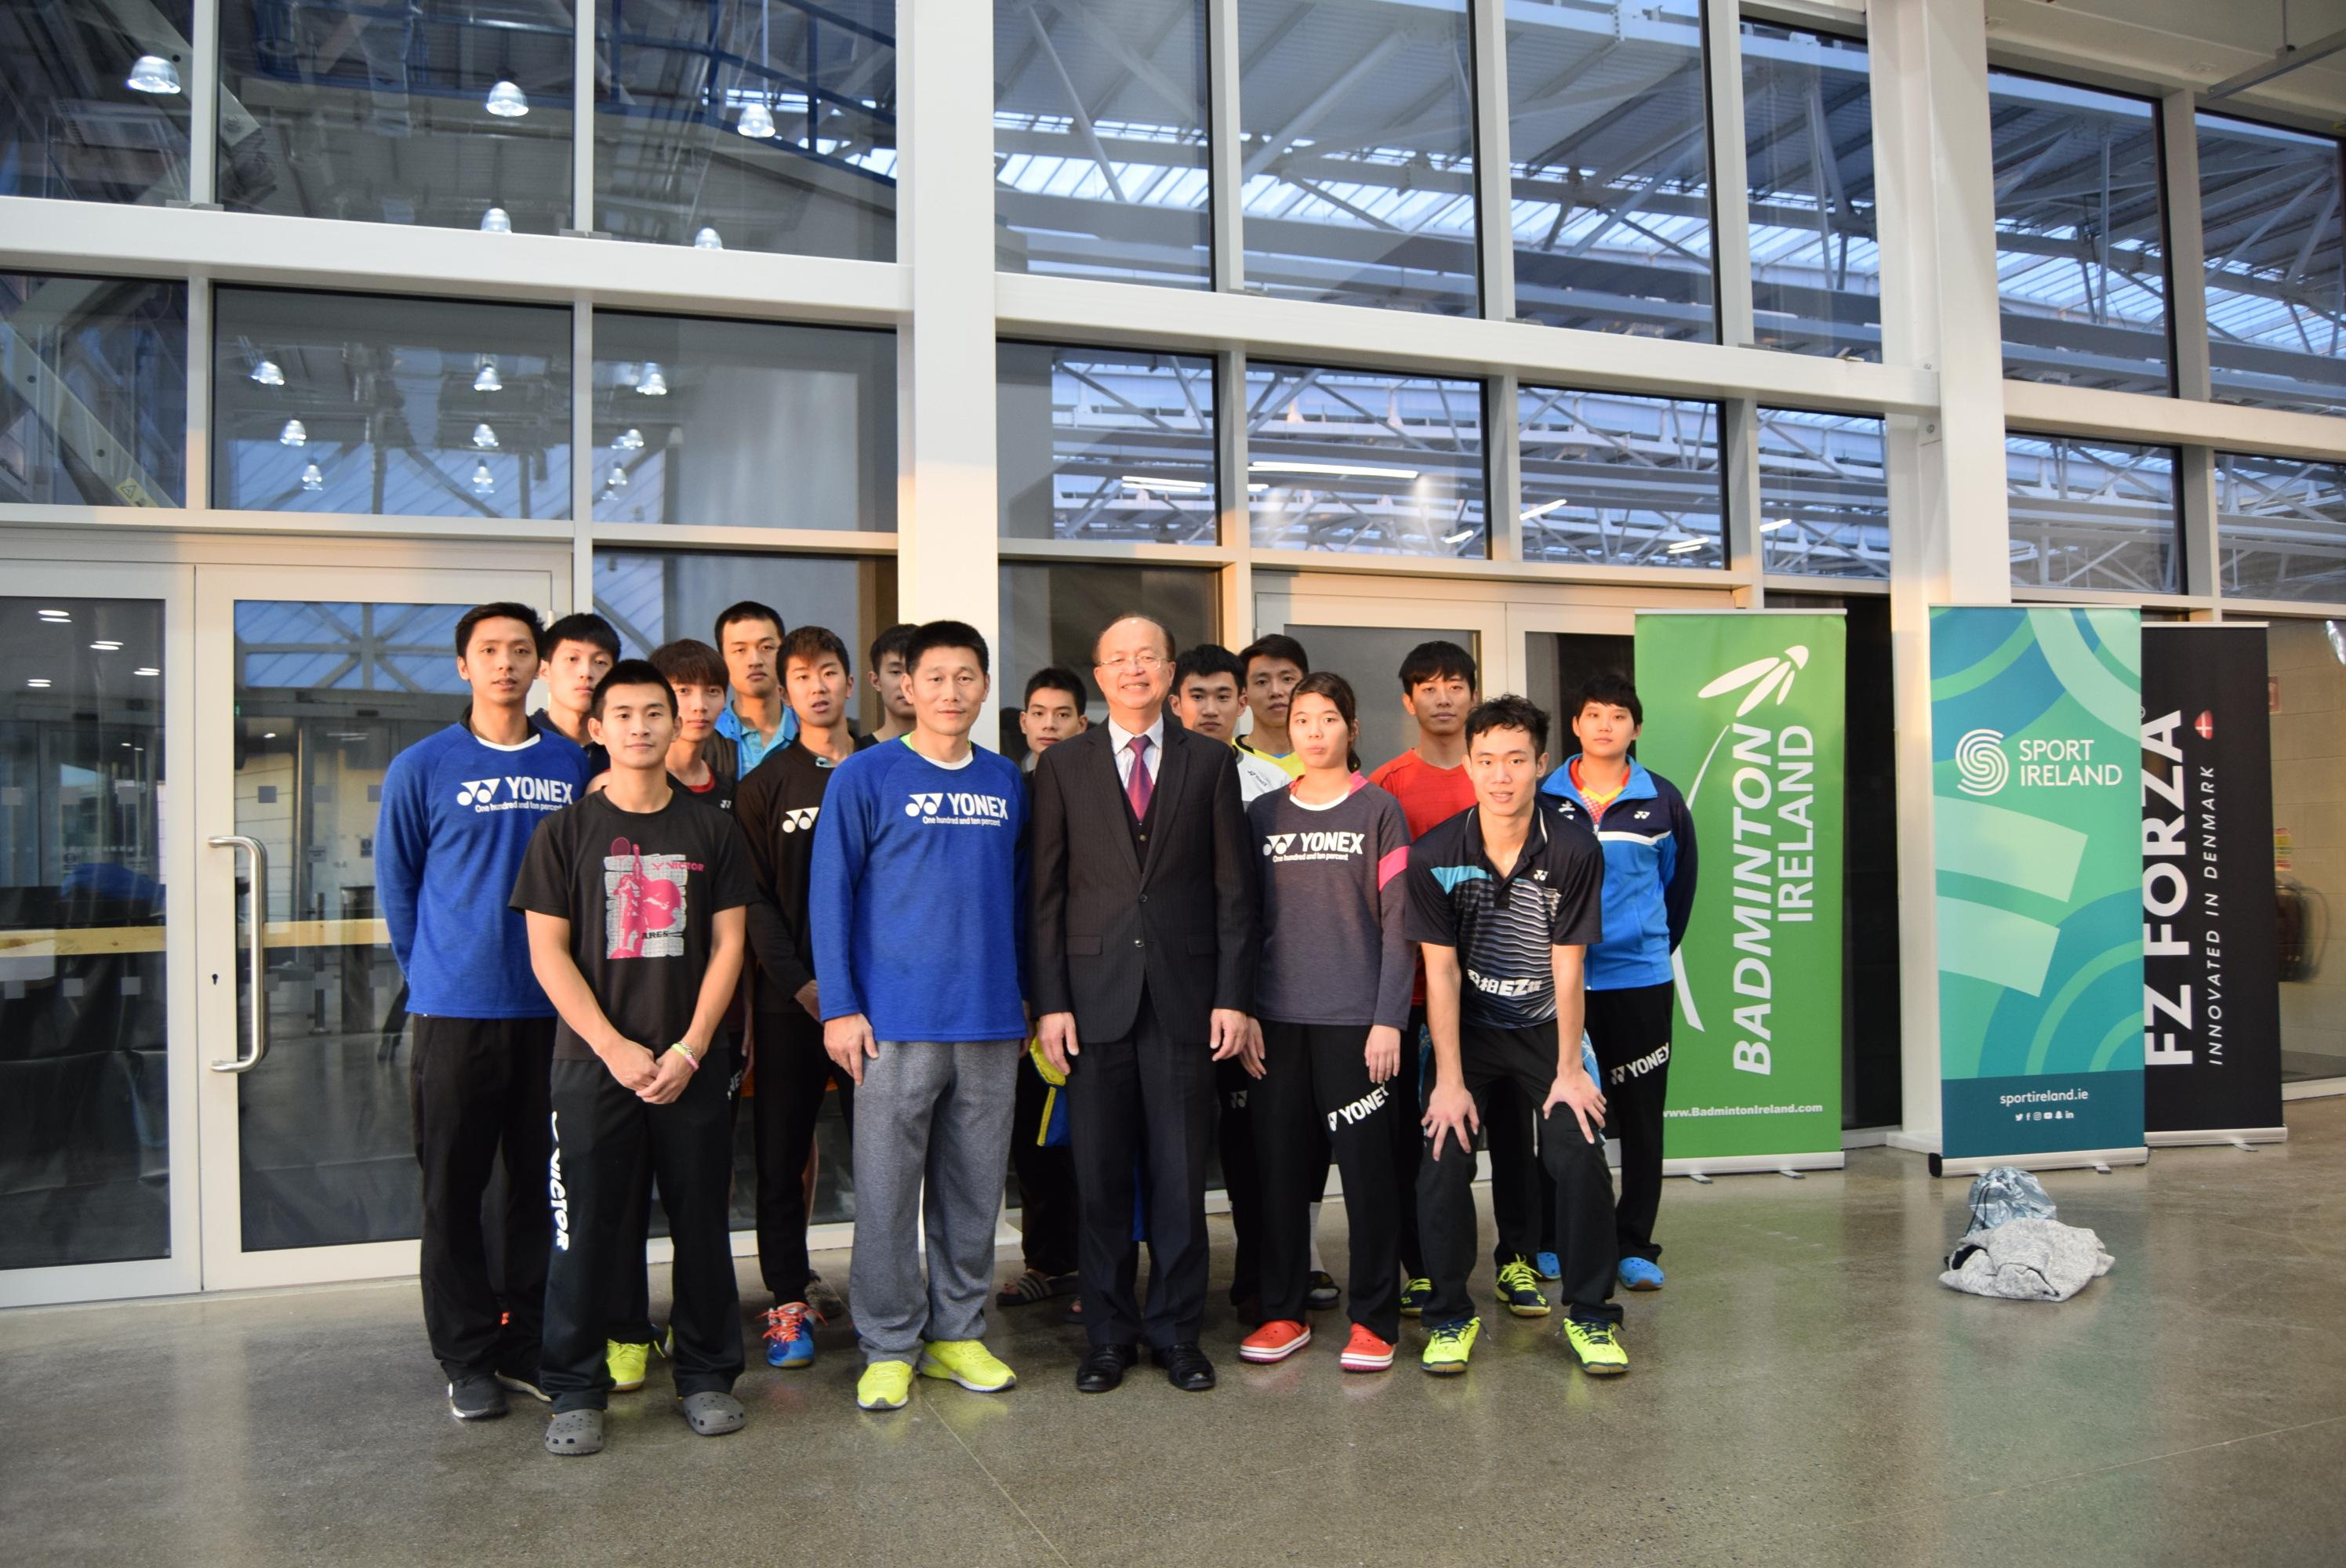 Representative Tu attends the Irish National Sports Center tocheer on our badminton players